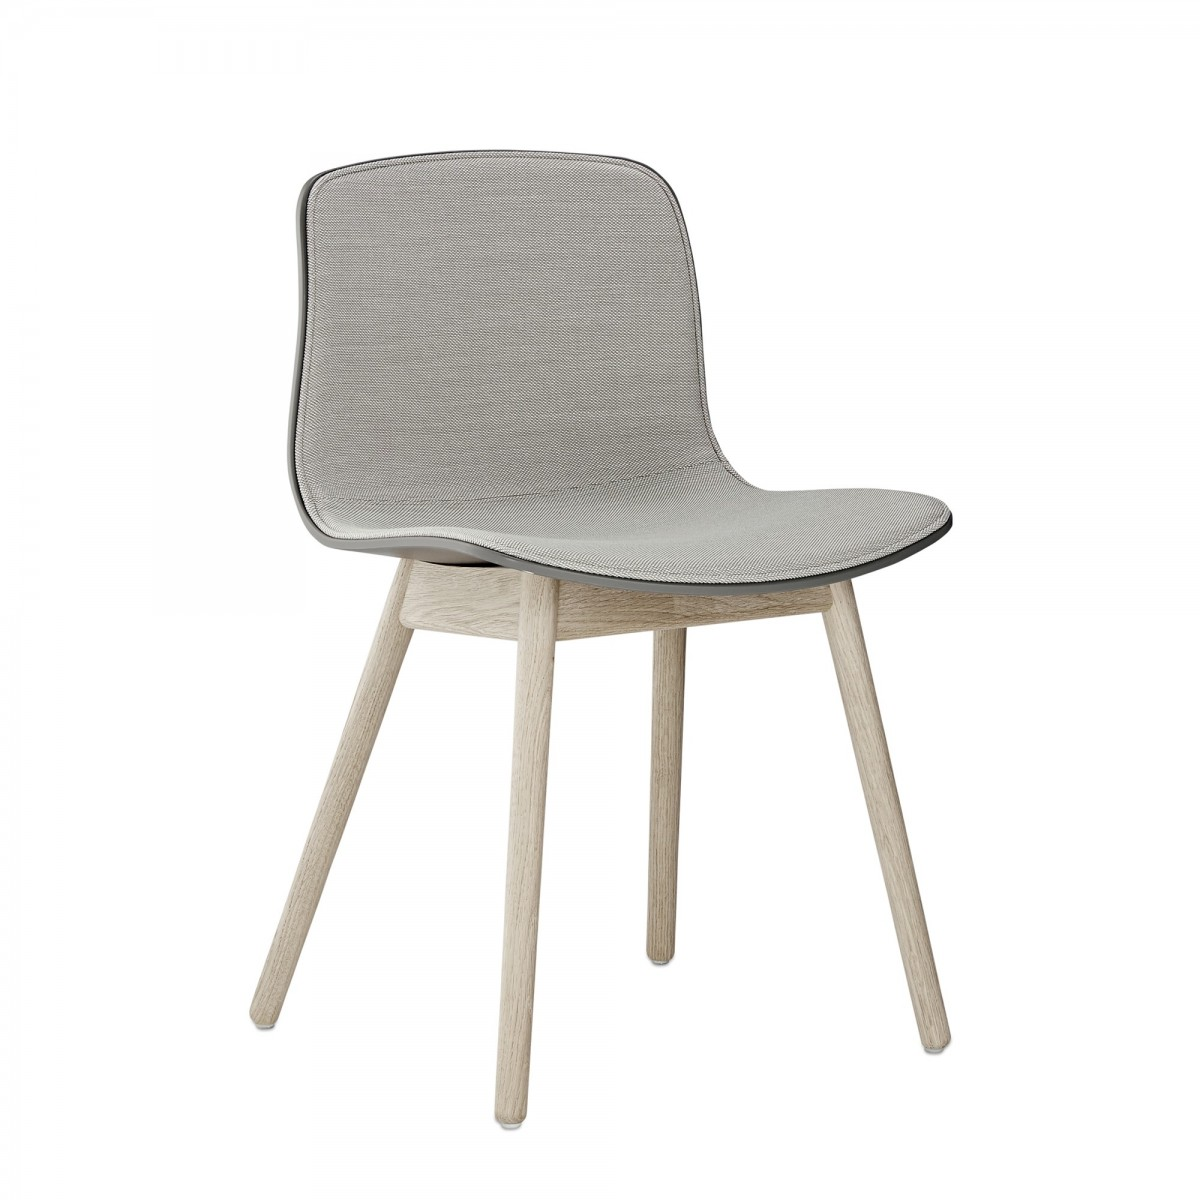 Hay Stuhl Replica Aac 12 Upholstered With Kvadrat Fabric And Wood Base Hay